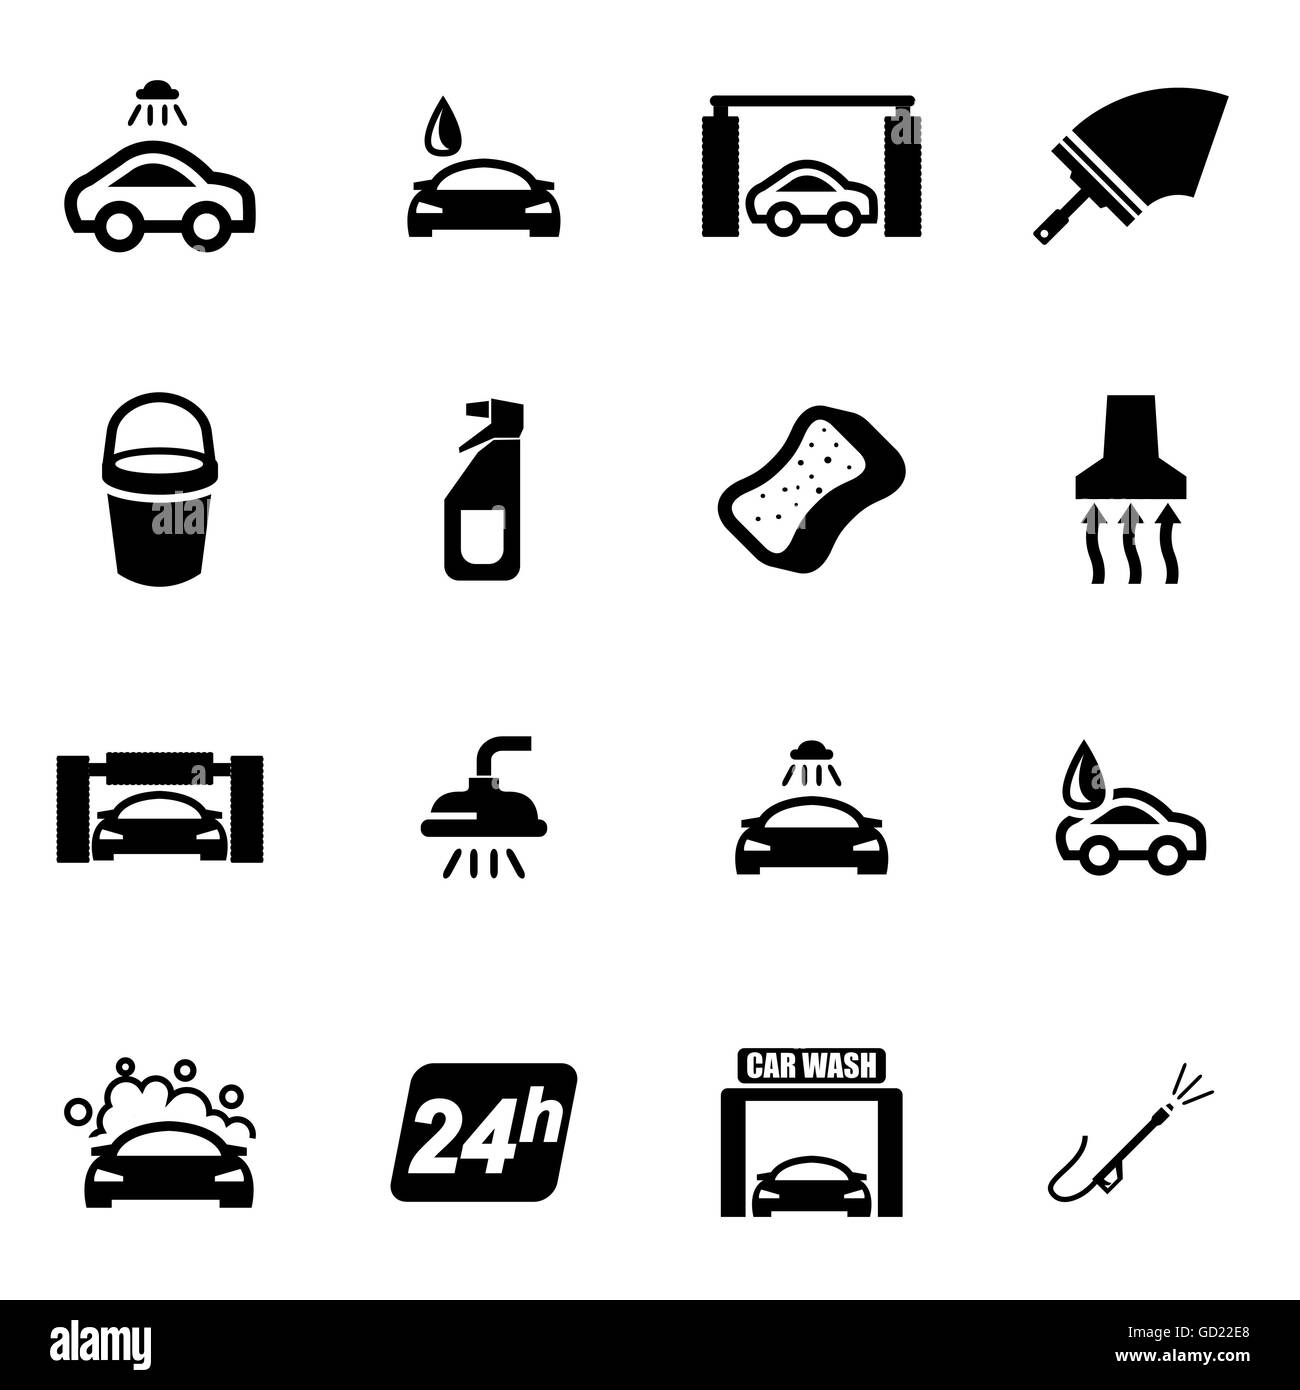 Vector Black Car Wash Icon Set Stock Vector Art Illustration